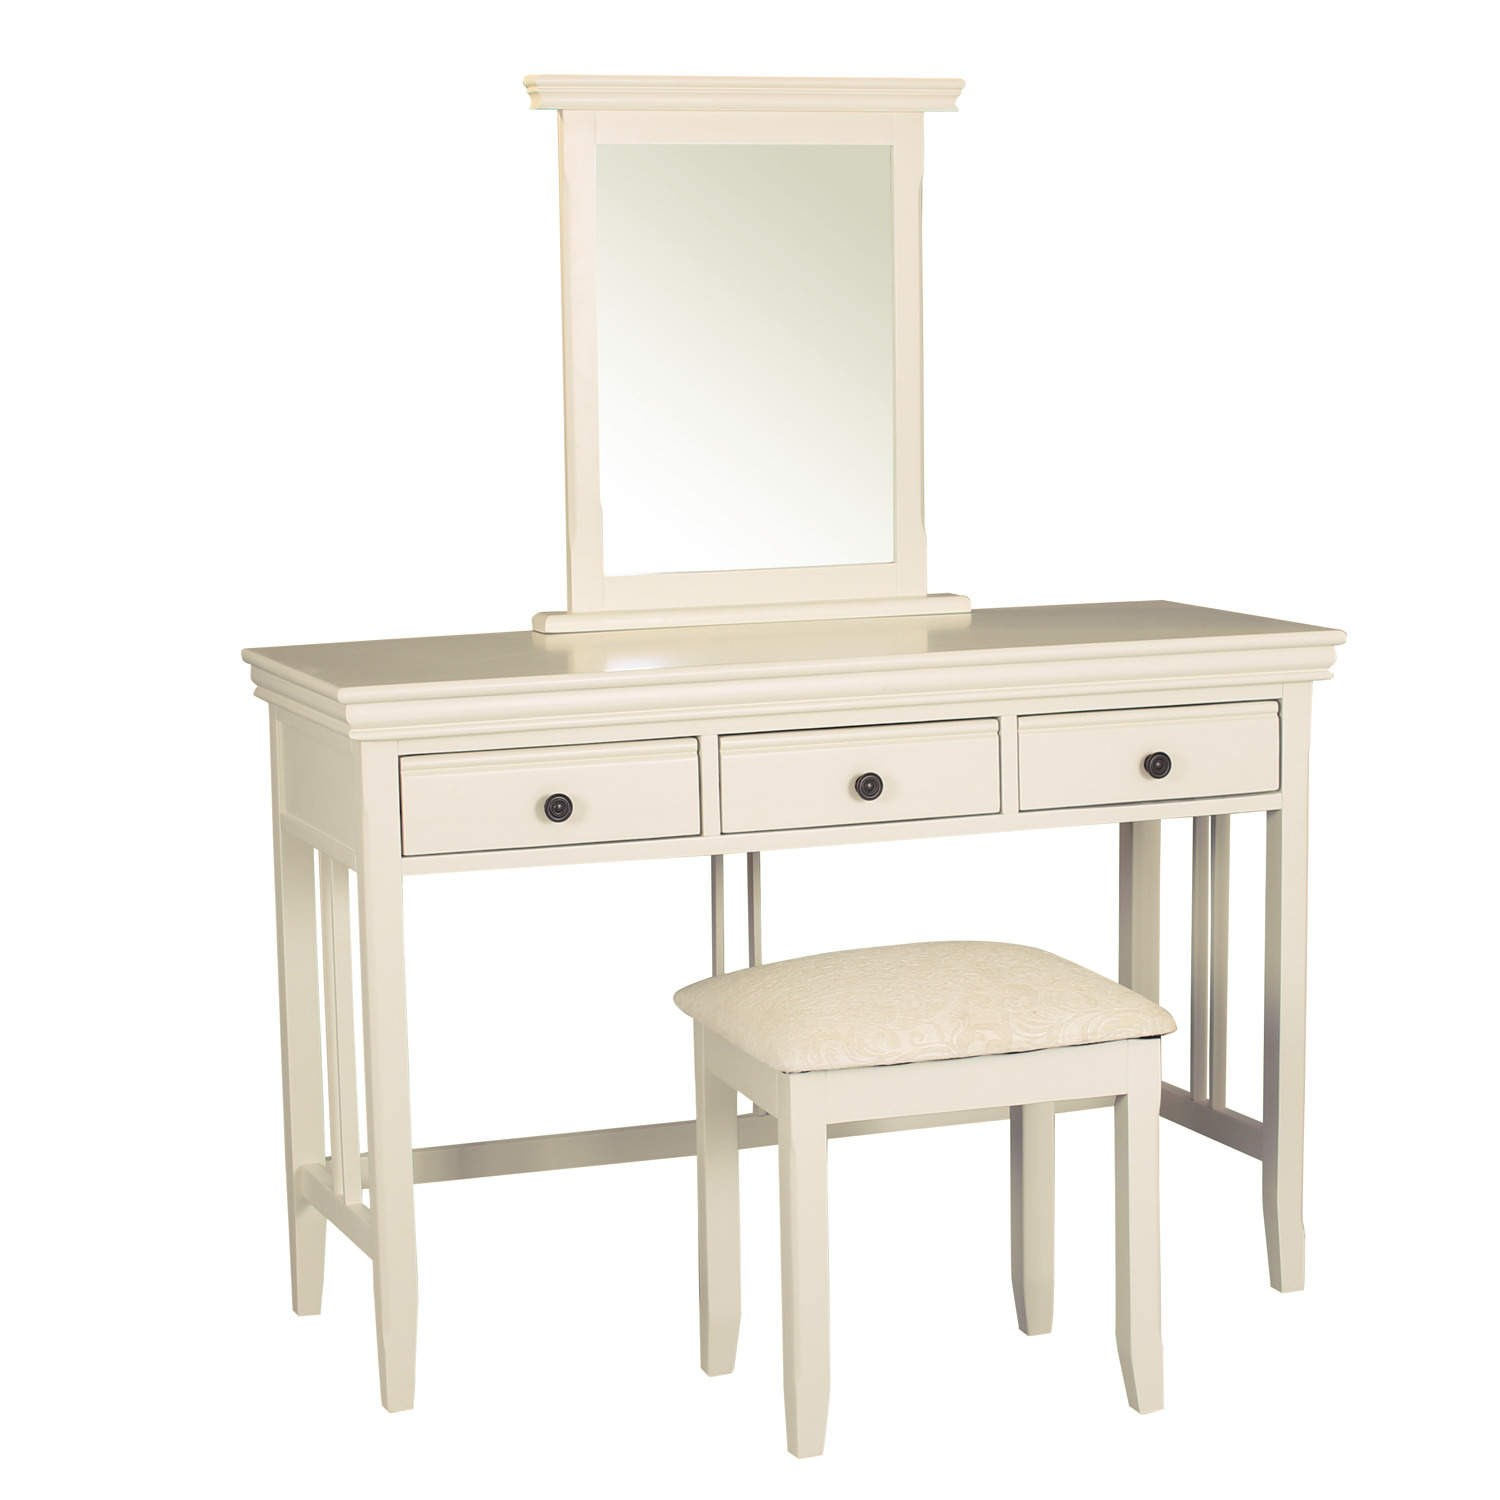 Wonderful image of Savannah Solid Acacia Wood Dressing Table Stool in Ivory SAV008 eBay with #847047 color and 1500x1500 pixels